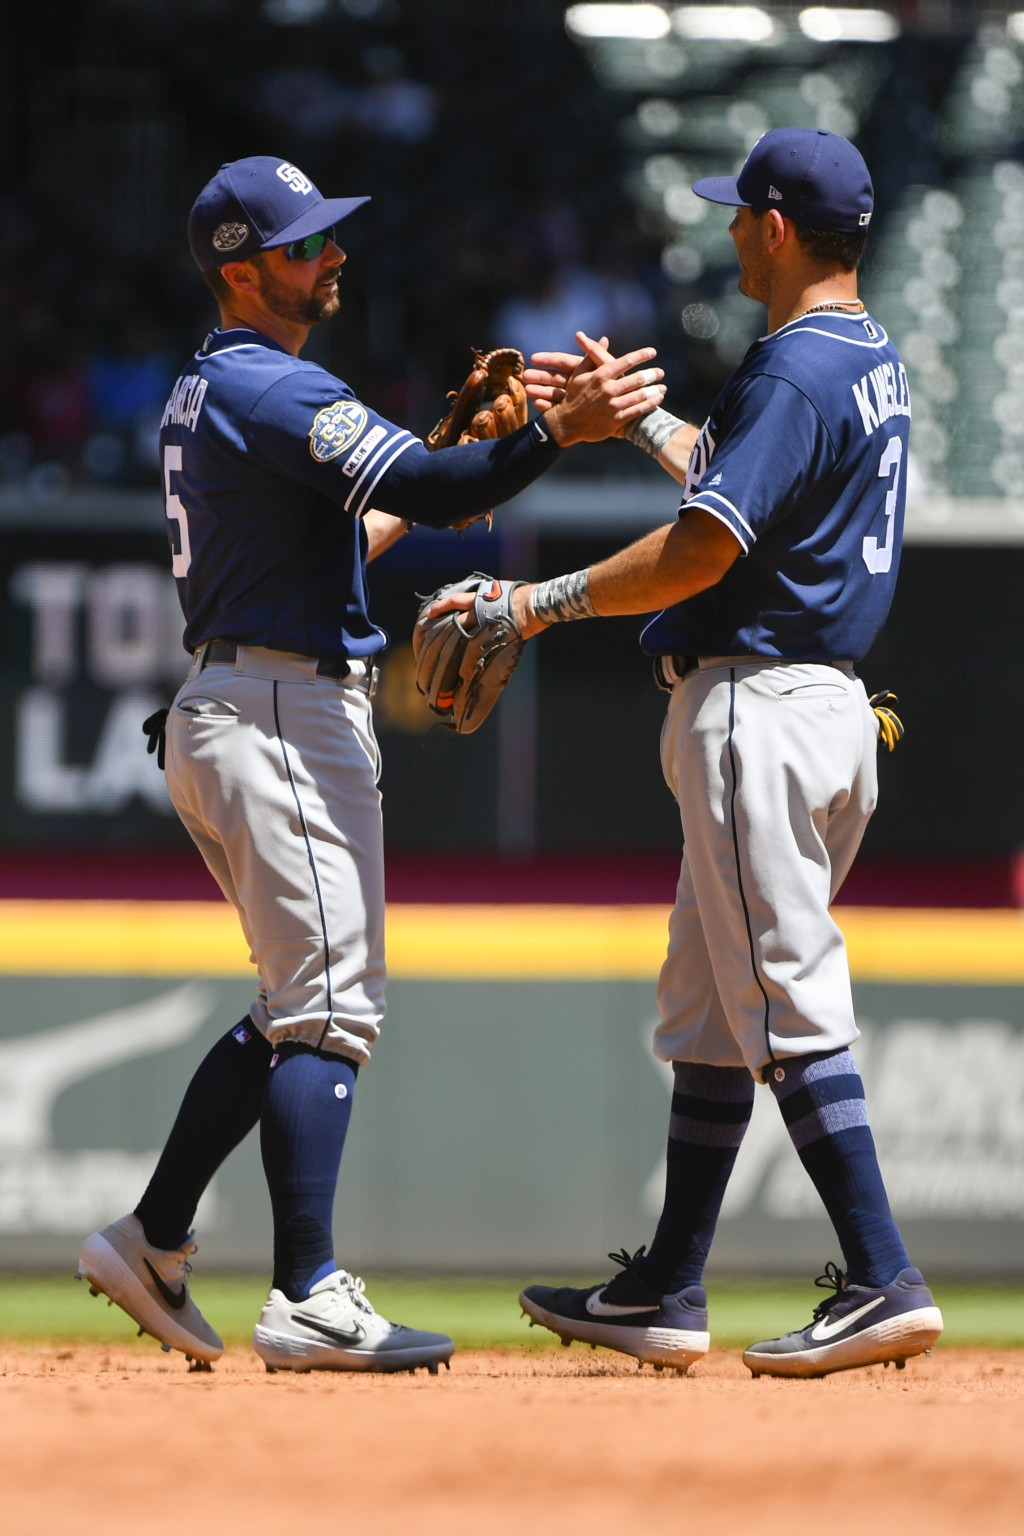 San Diego Padres' Greg Garcia and Ian Kinsler, right, congratulate each other after a baseball game against the Atlanta Braves, Thursday, May 2, 2019